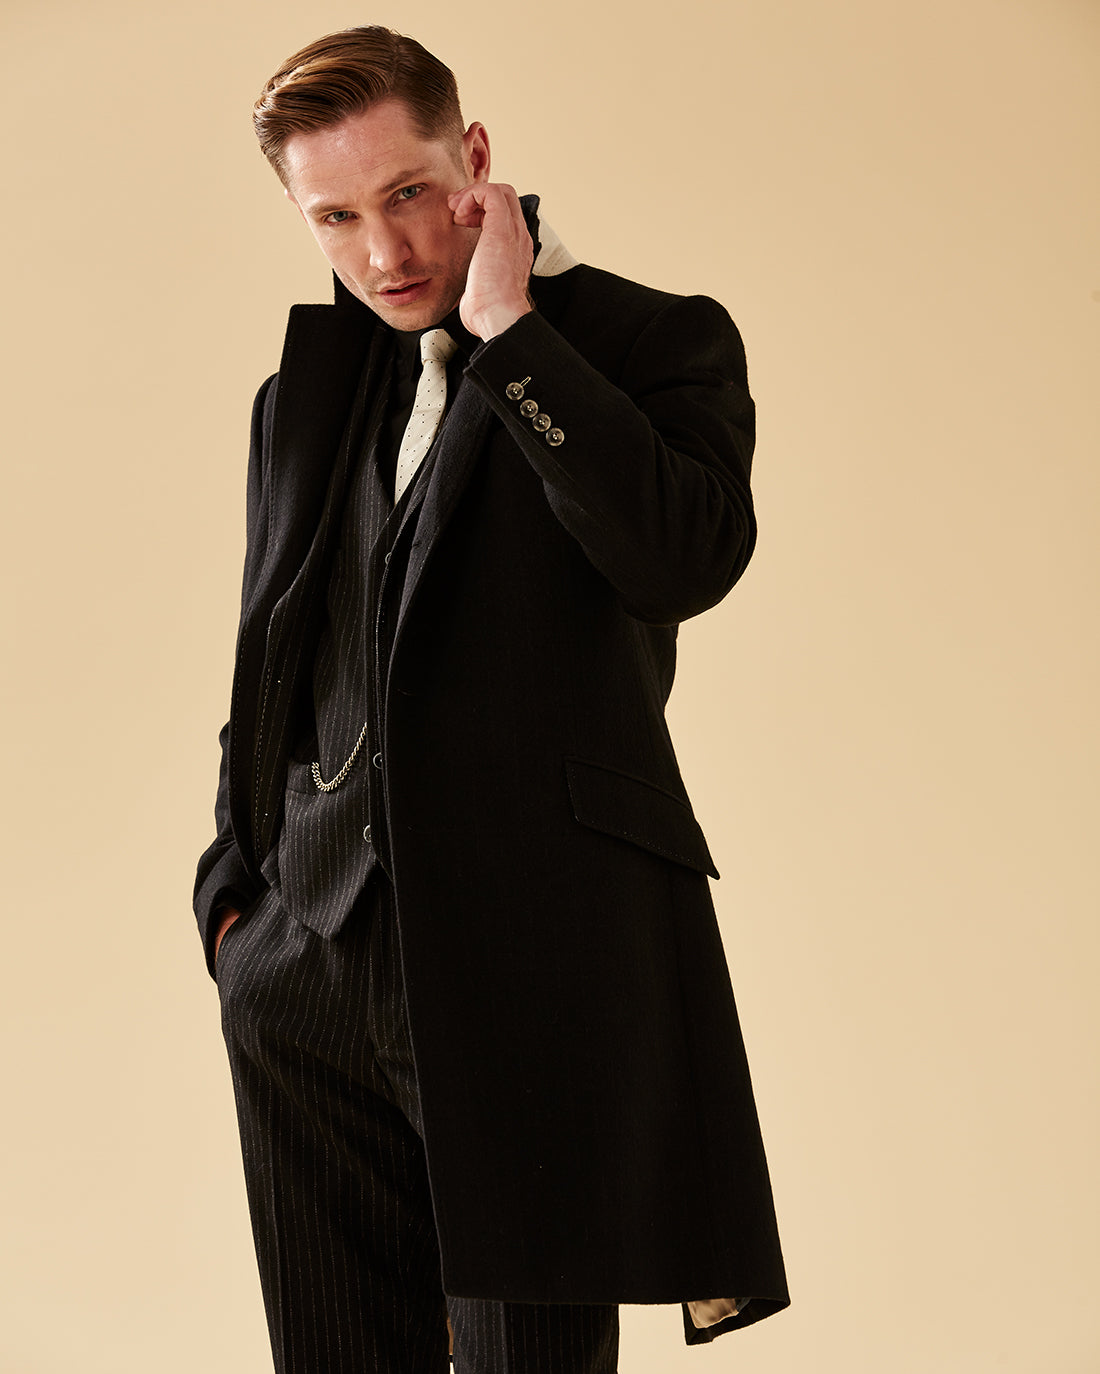 Black Pinstripe SB3 Overcoat - Holland Esquire